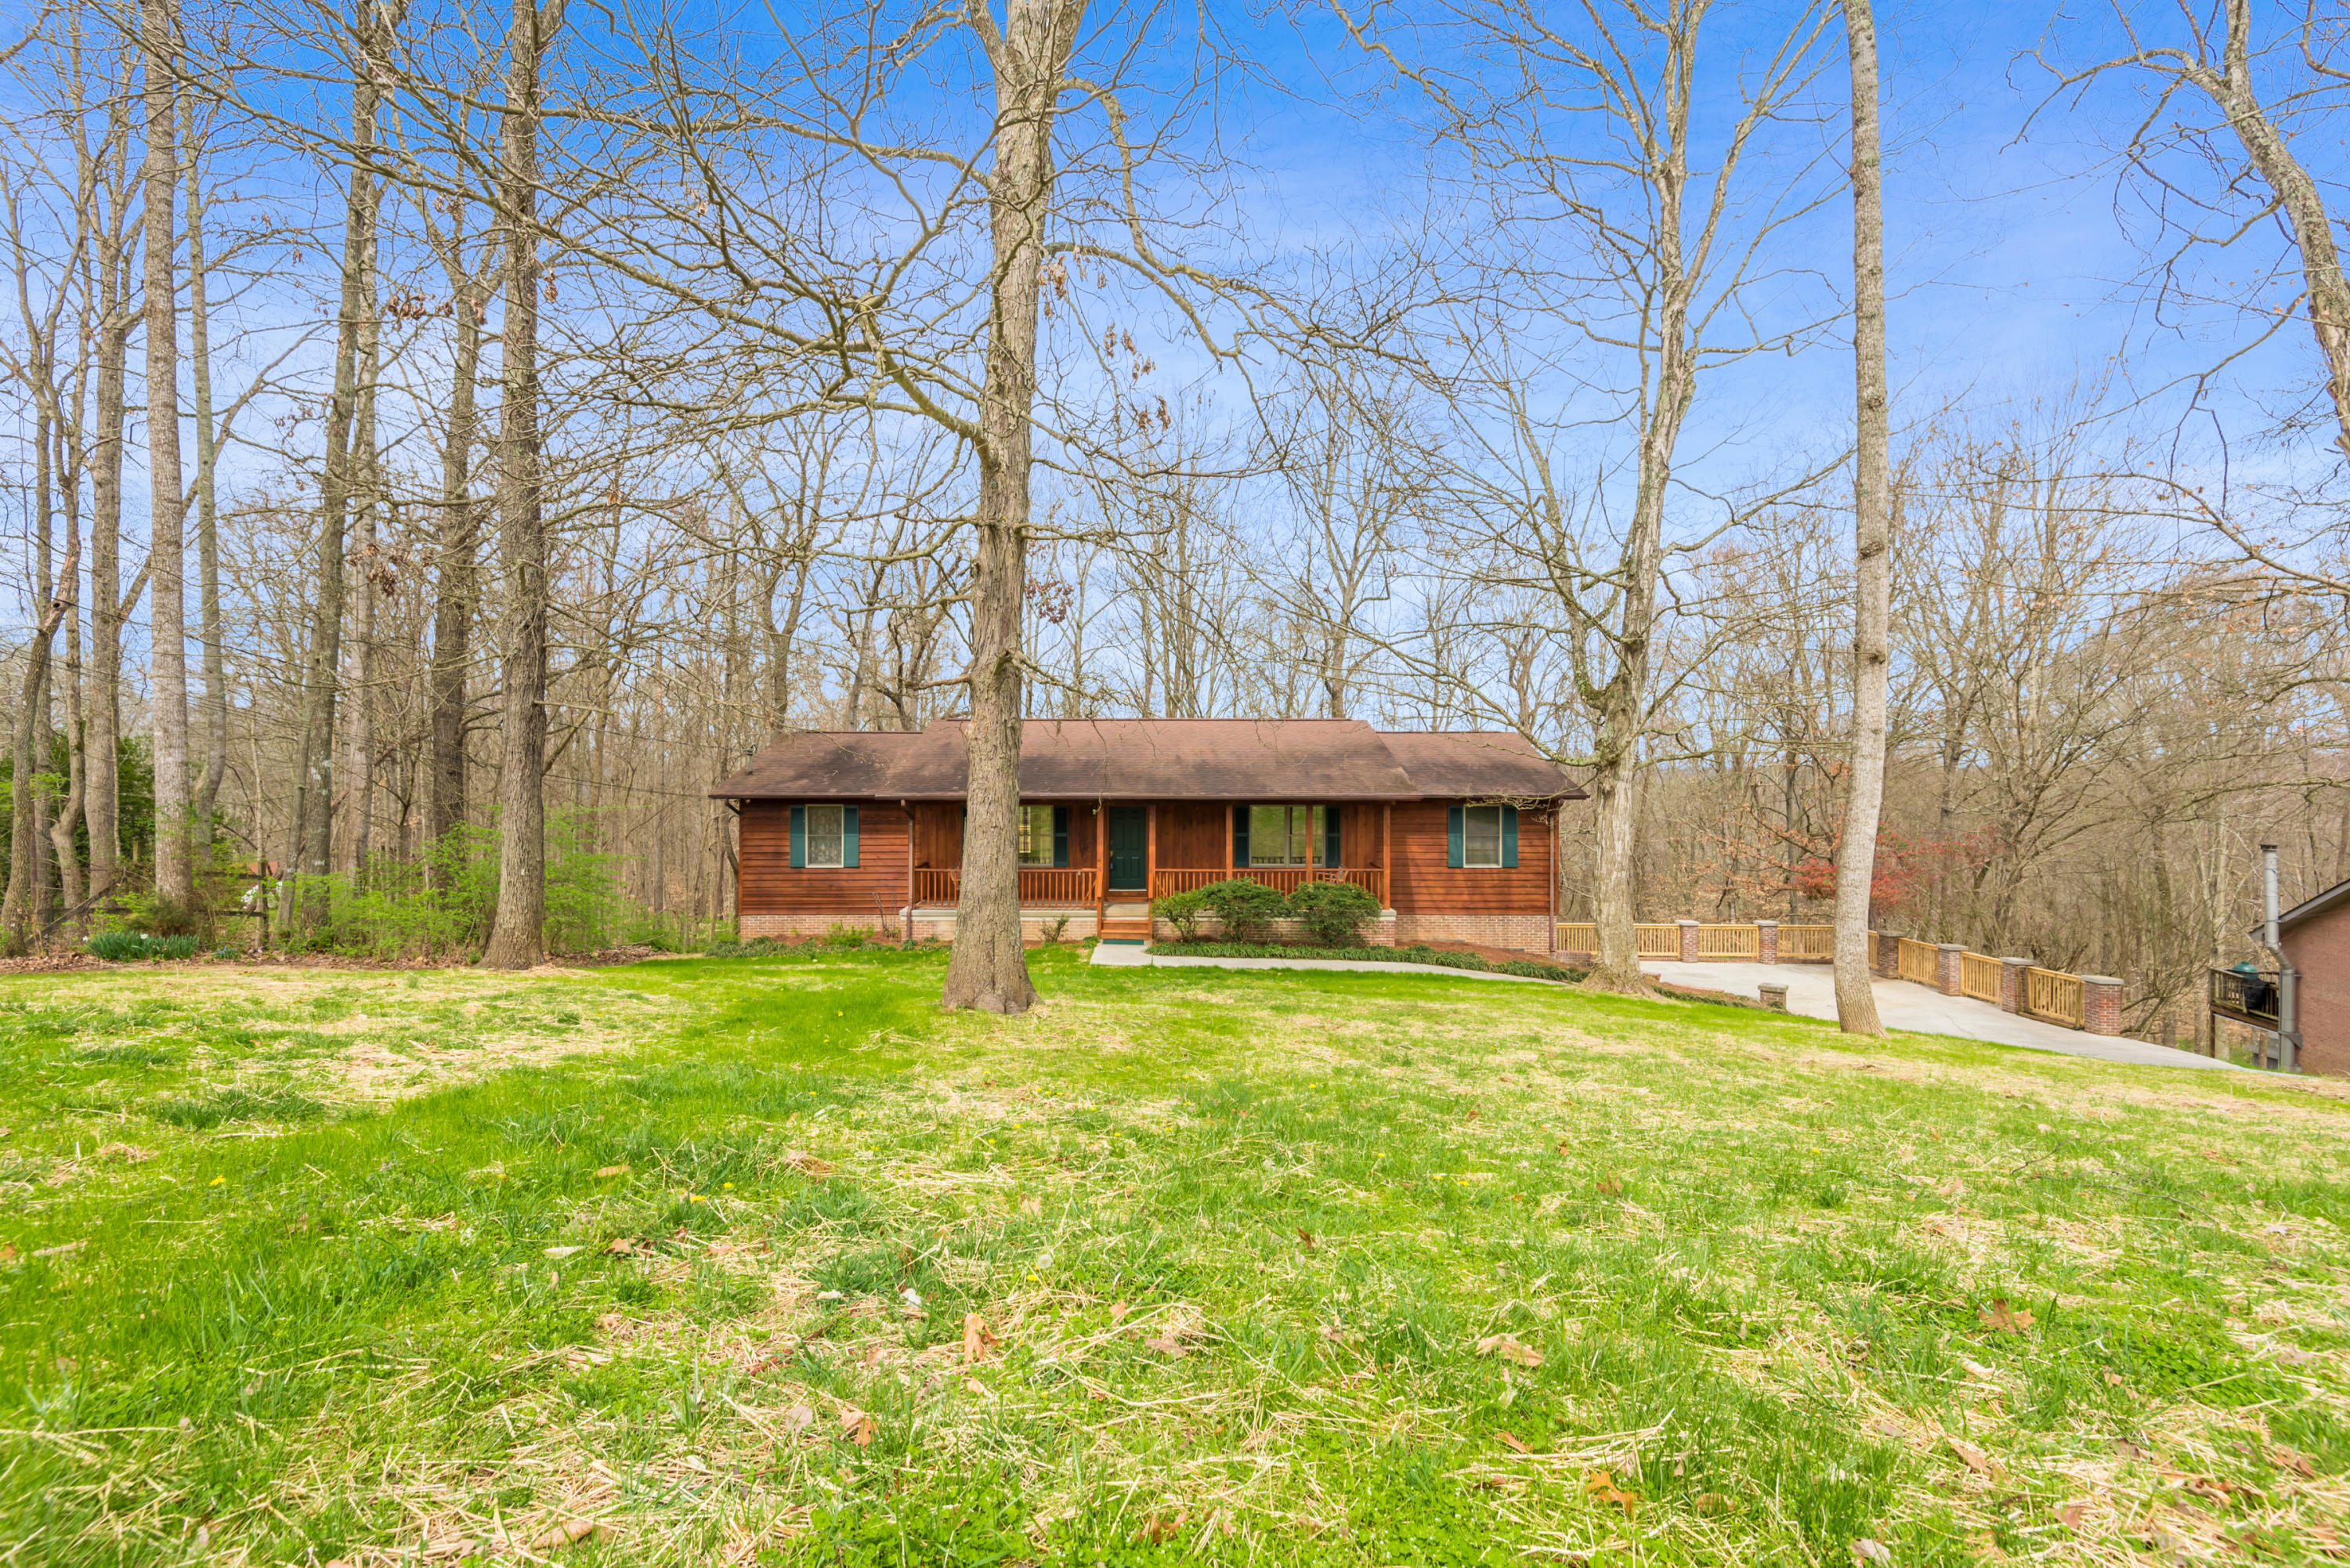 9411 Jim Loy Rd, Strawberry Plains, Tennessee 37871, 3 Bedrooms Bedrooms, ,2 BathroomsBathrooms,Single Family,For Sale,Jim Loy,1111569